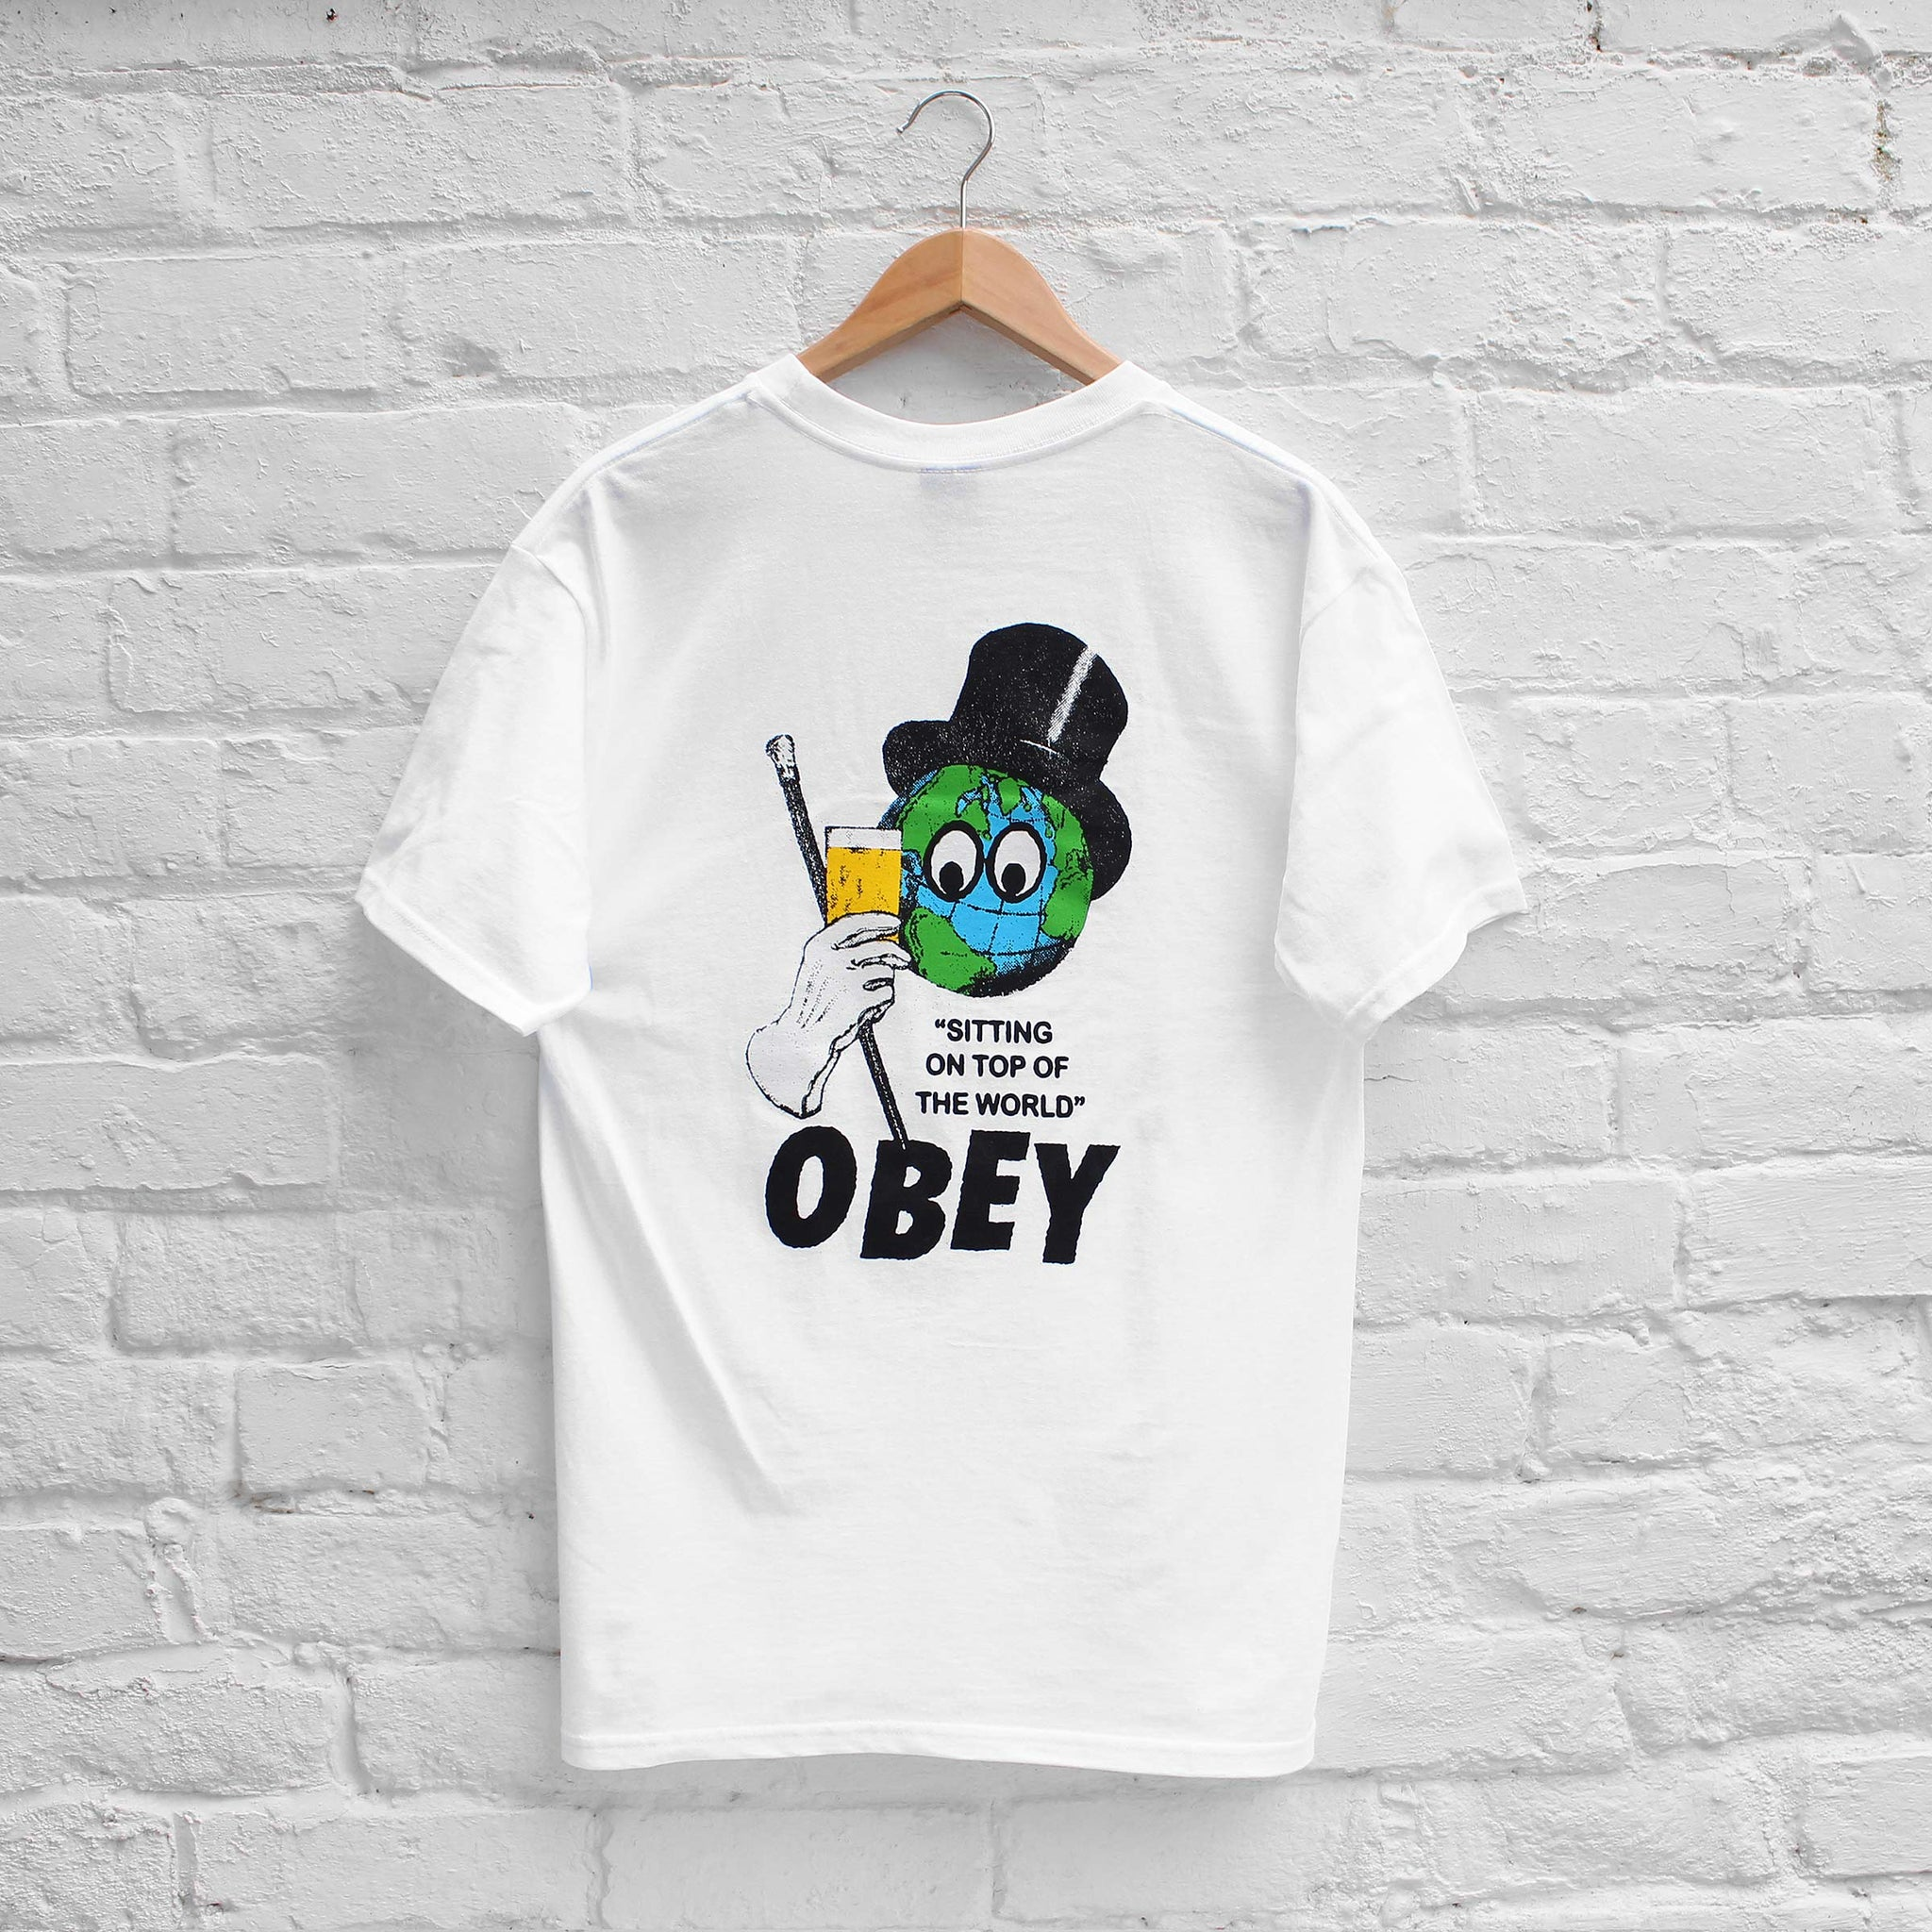 Obey On Top of the World T-Shirt White